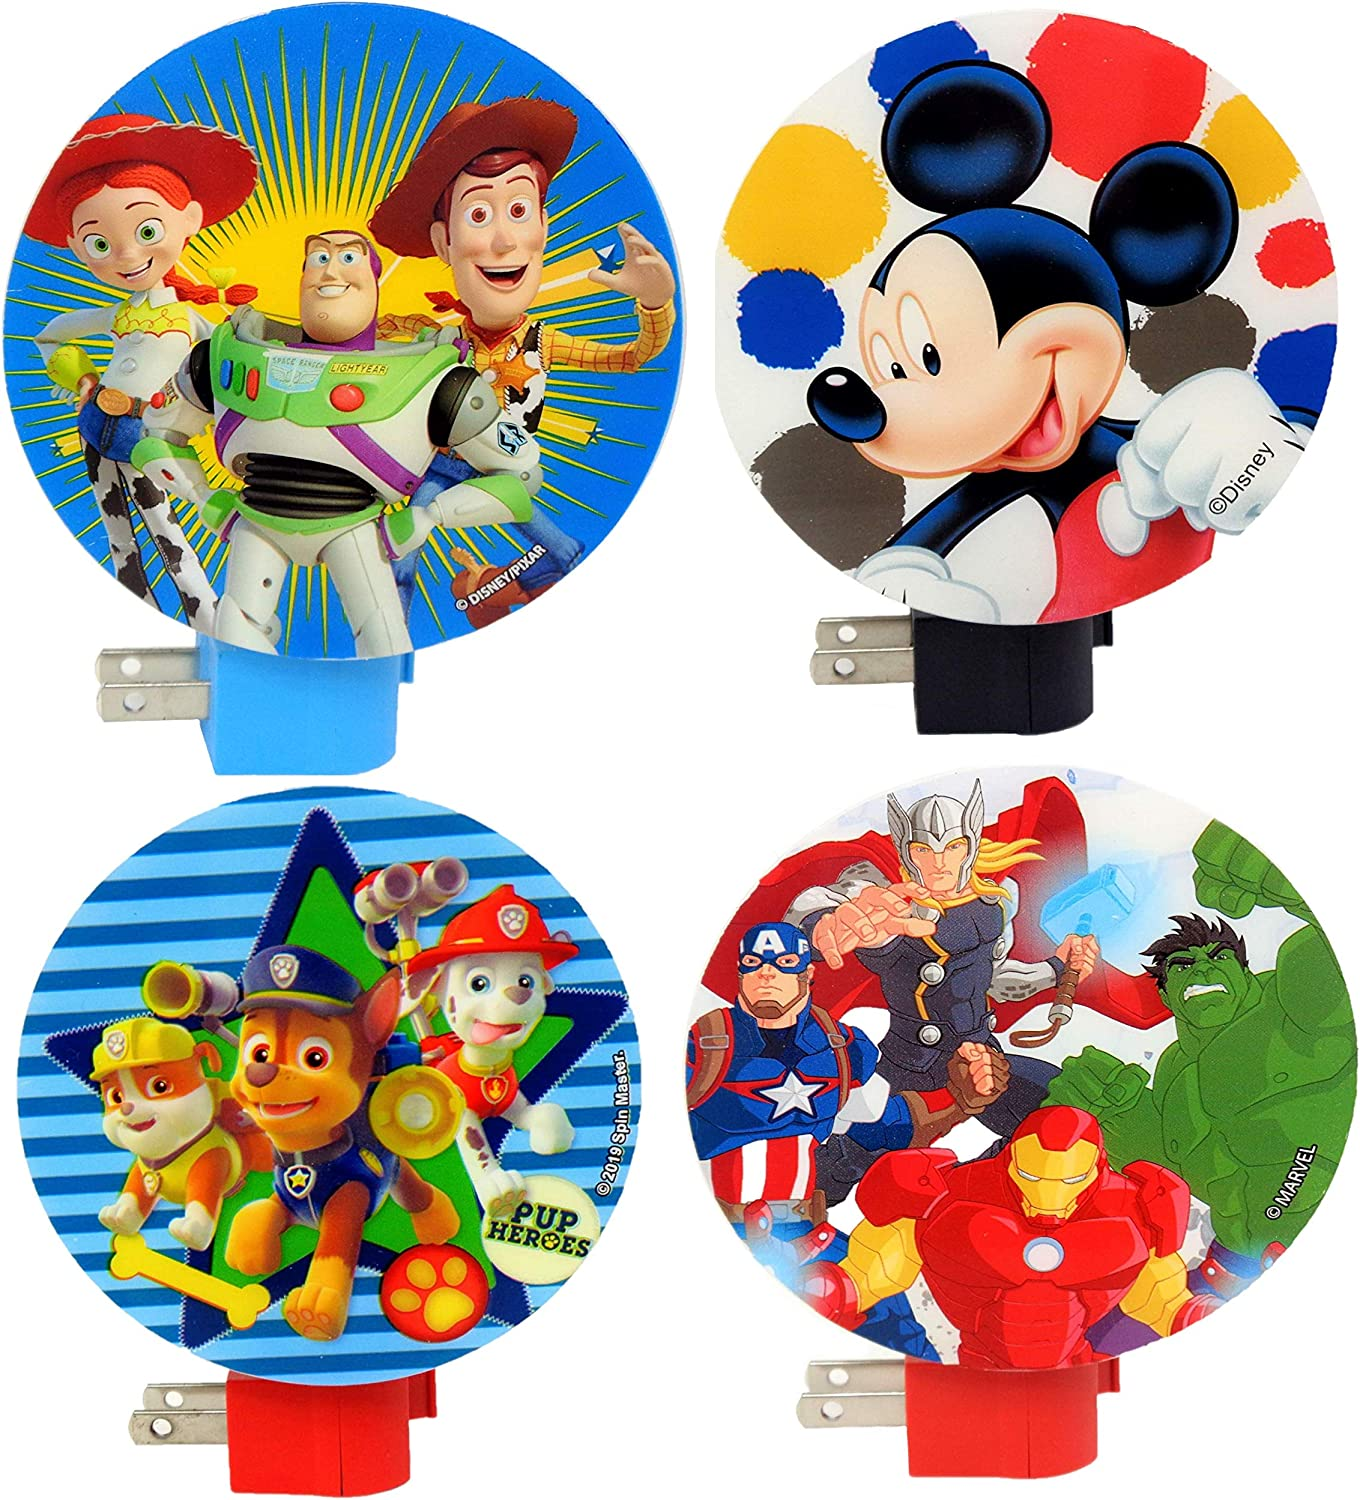 Disney Night New products Regular store world's highest quality popular Light for Kids Bedroom 4 Pack